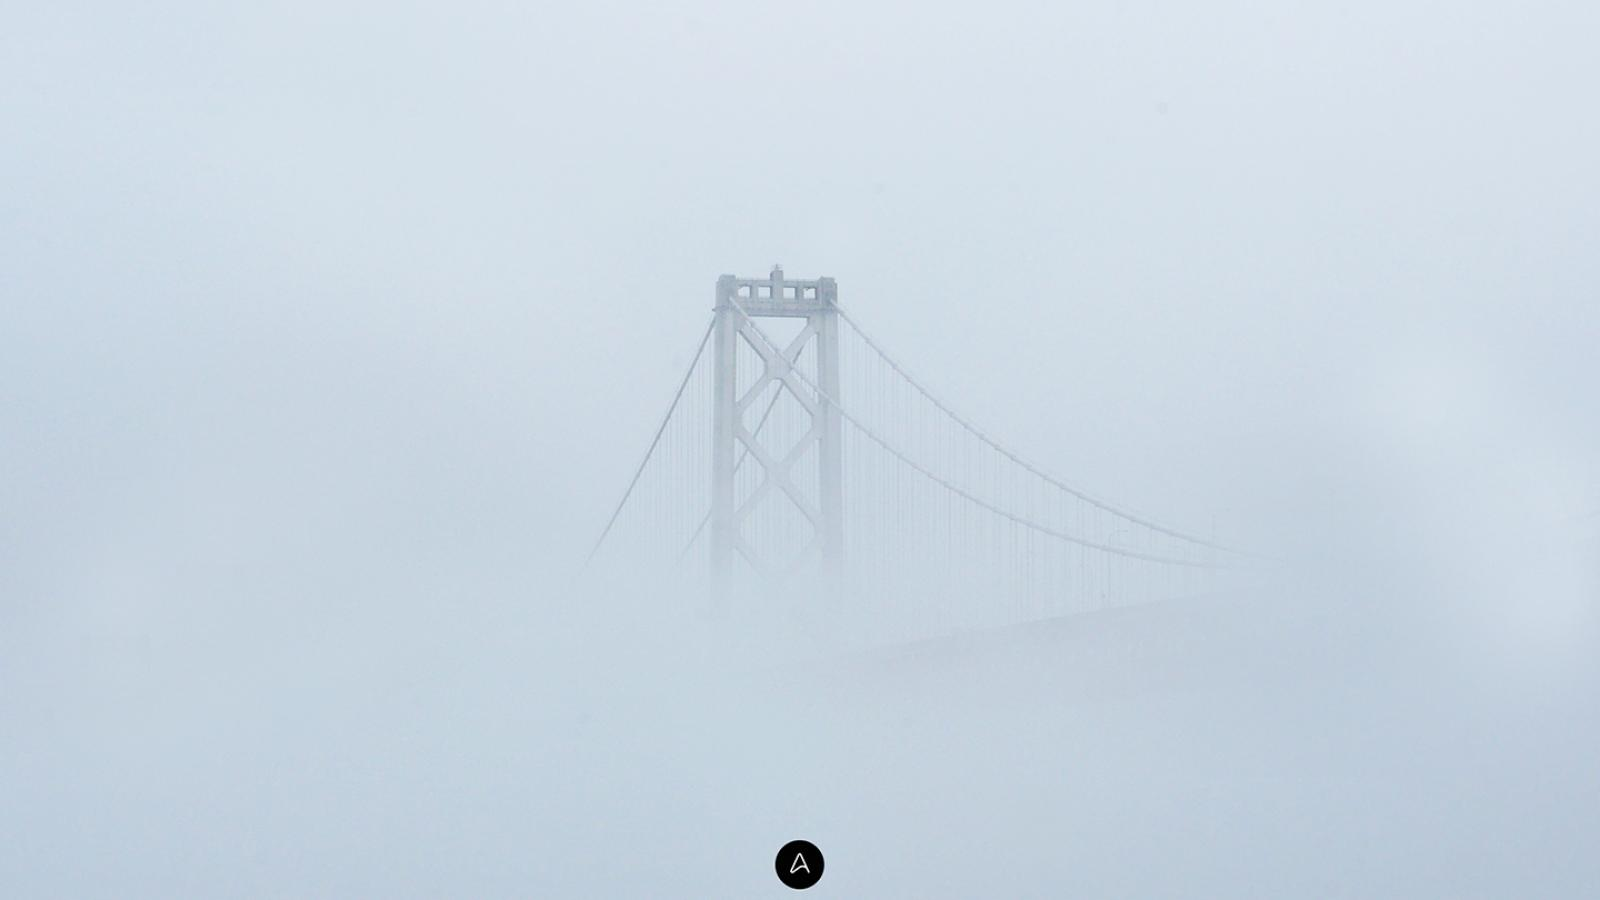 Wallpaper of the Week - Fog and the bridge